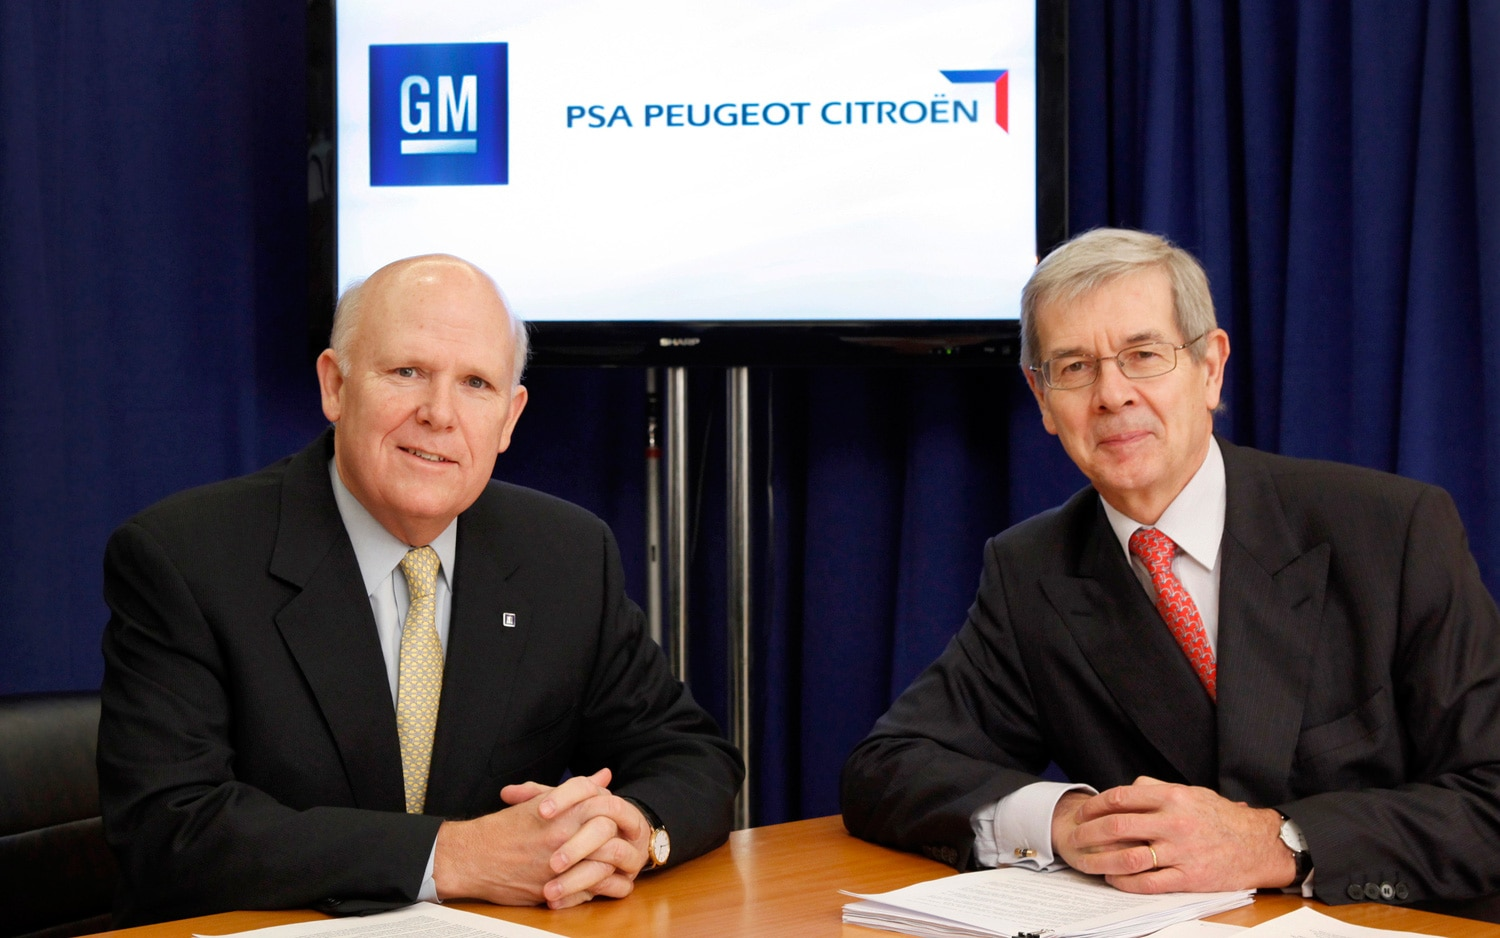 GM PSA CEOs At Signing1